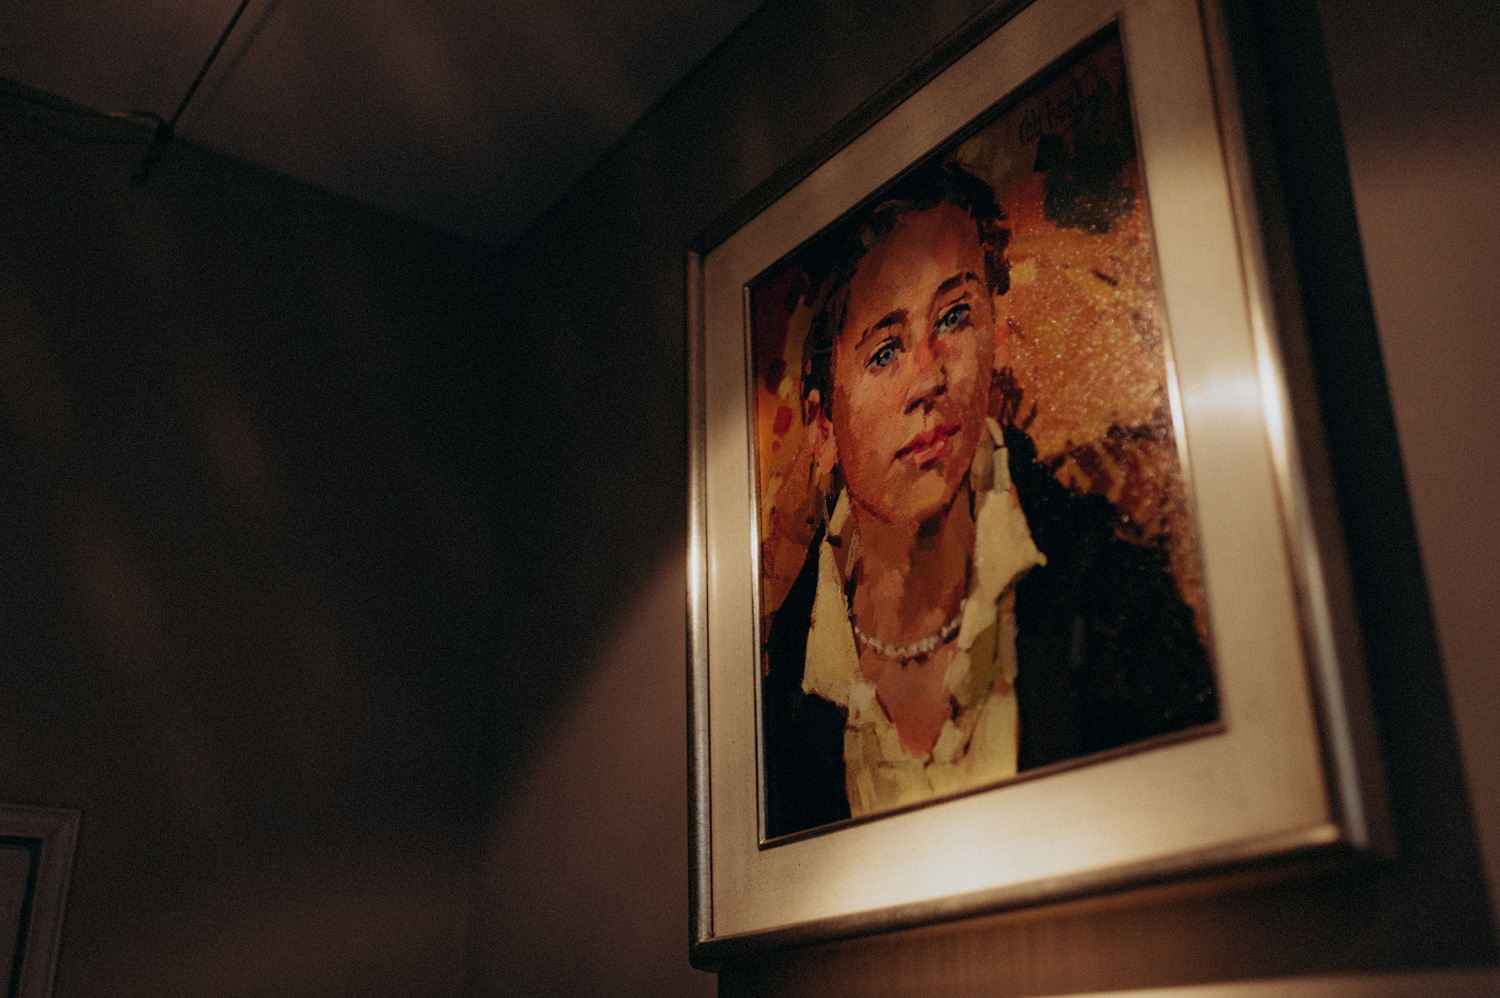 Painting of woman hanging on wall